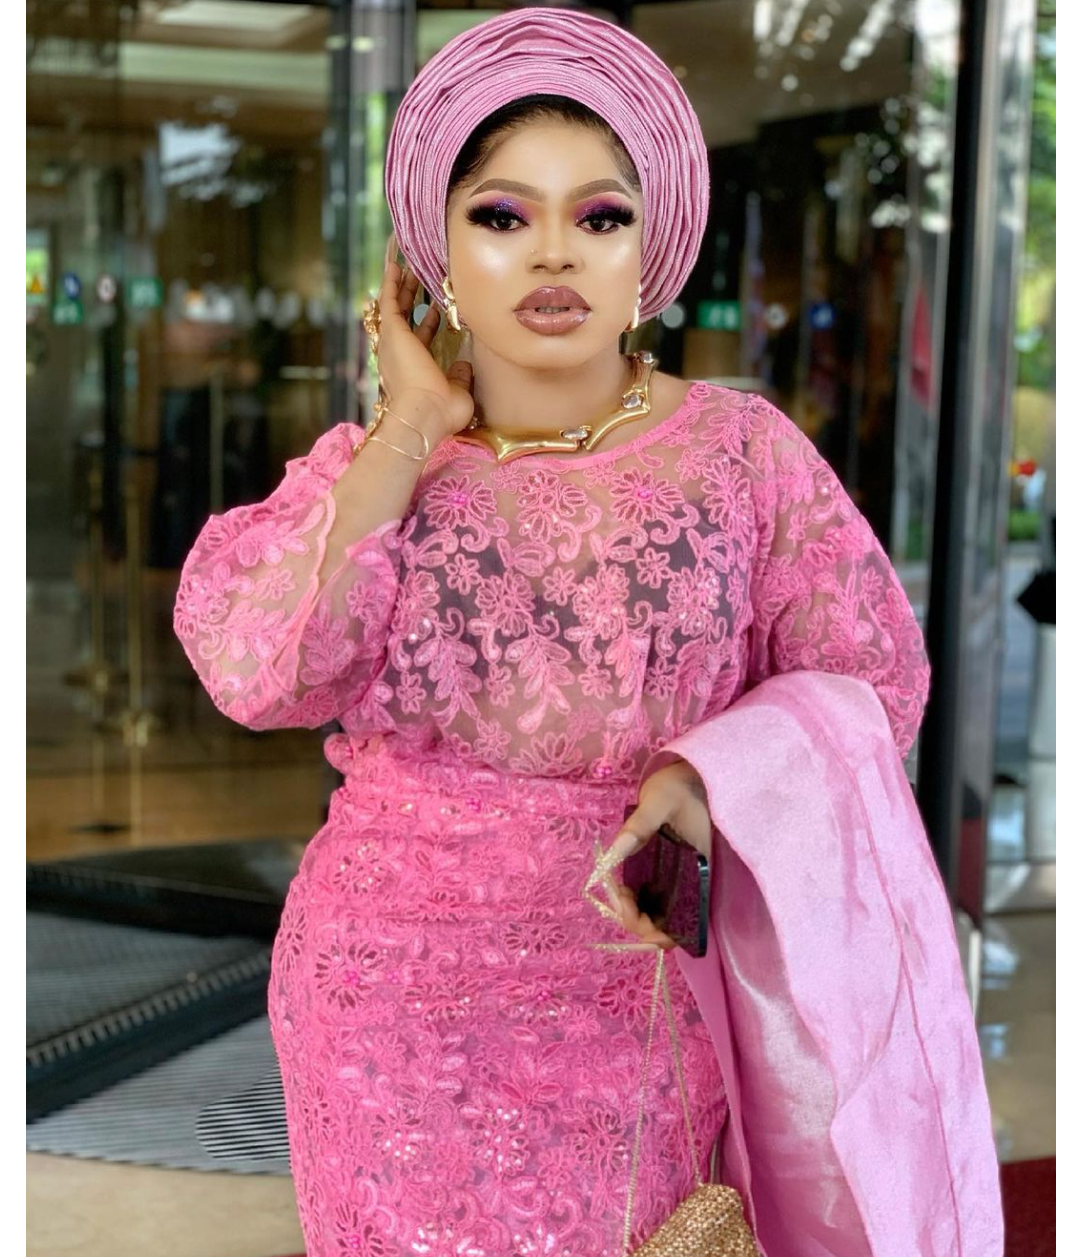 """""""I want my life back"""" My hips Na die. Too cute and petite""""– Bobrisky"""